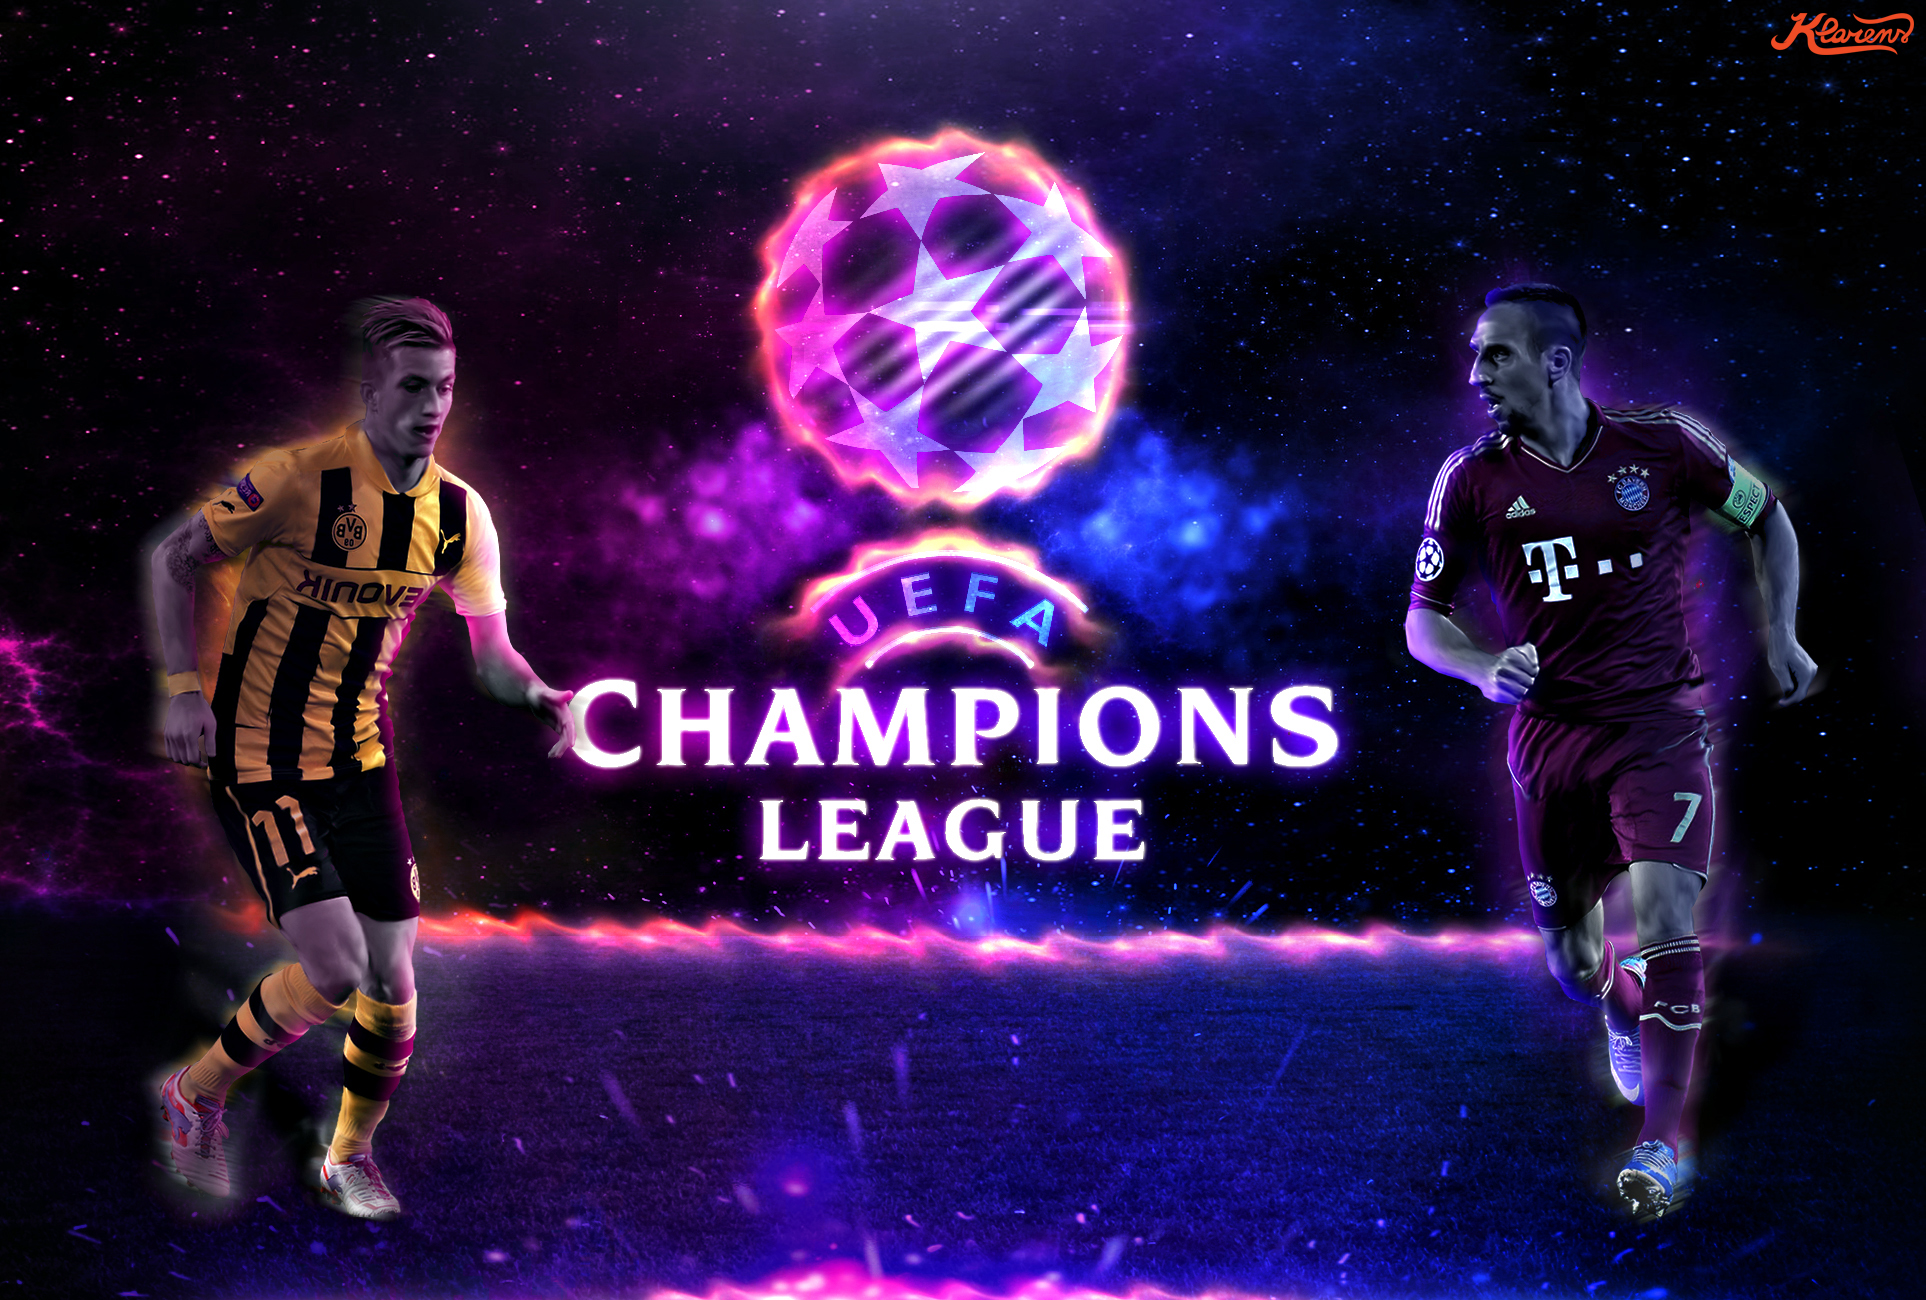 Uefa champions league 2013 final by gkdes1gn on deviantart